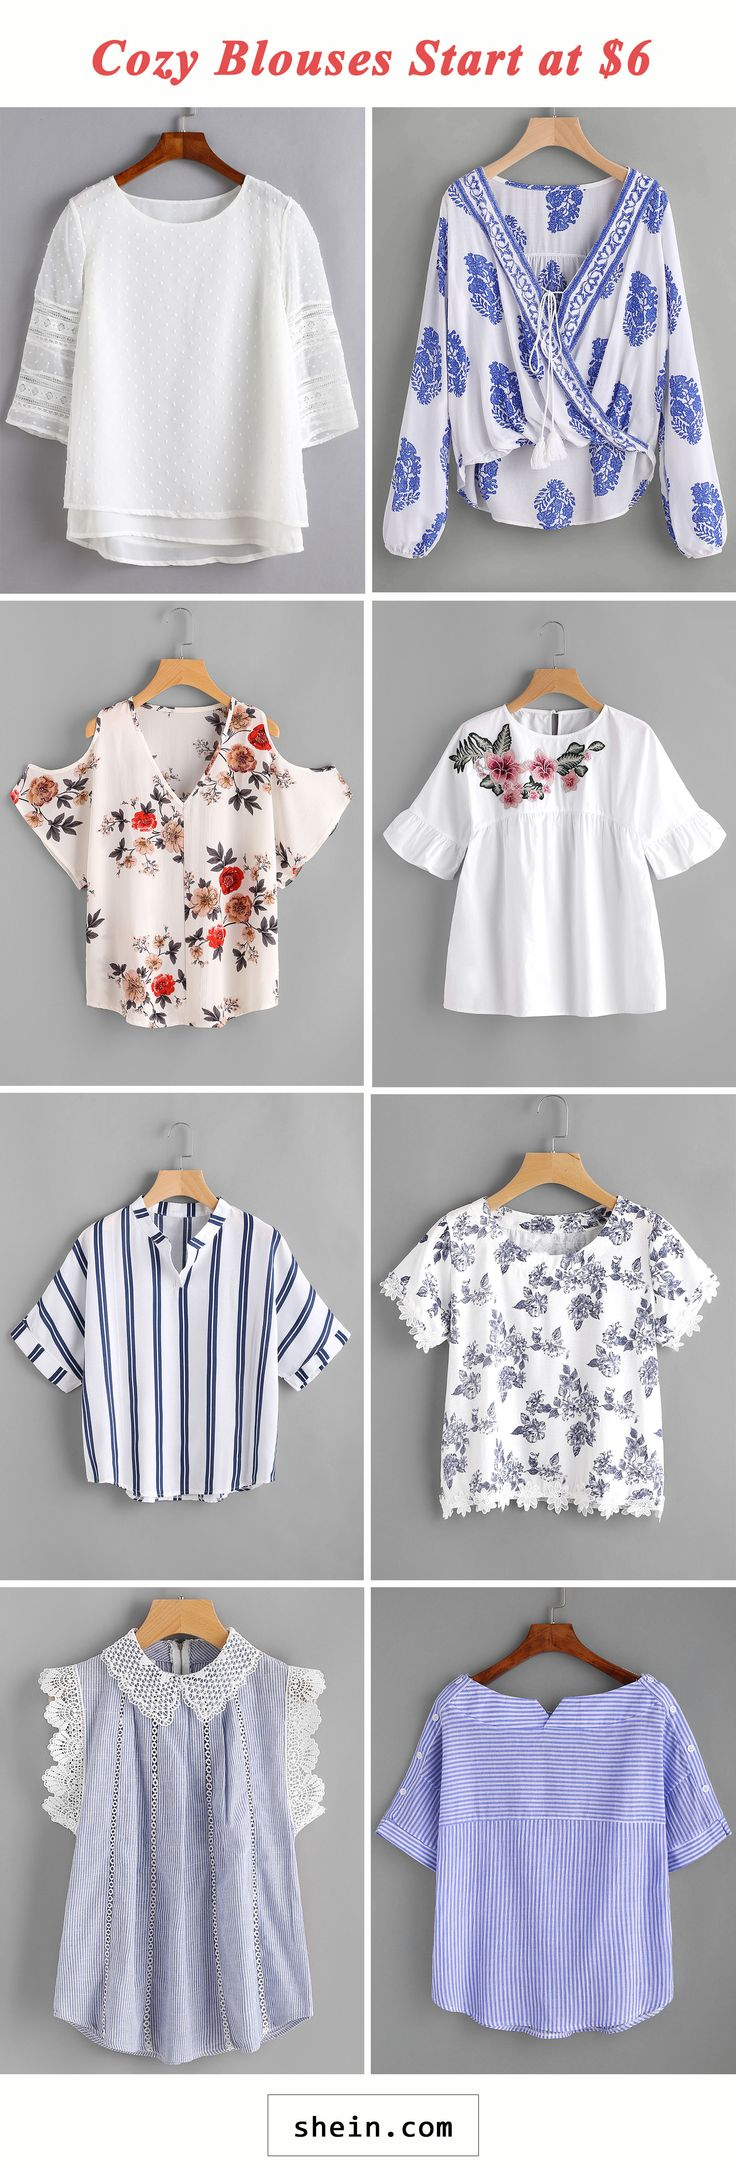 Cozy blouses start at $6!